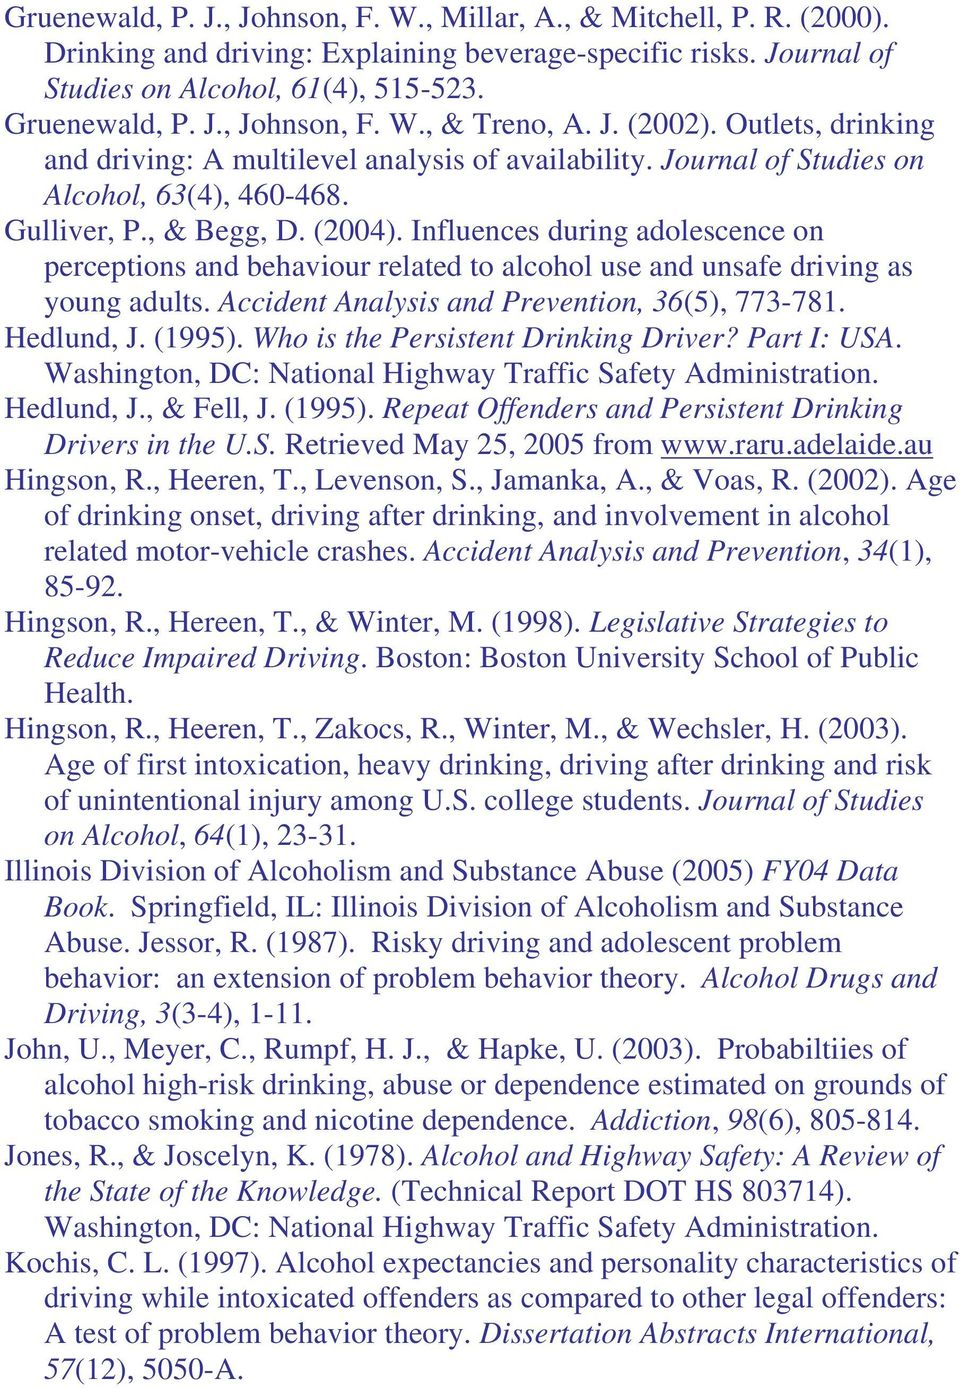 Influences during adolescence on perceptions and behaviour related to alcohol use and unsafe driving as young adults. Accident Analysis and Prevention, 36(5), 773-781. Hedlund, J. (1995).